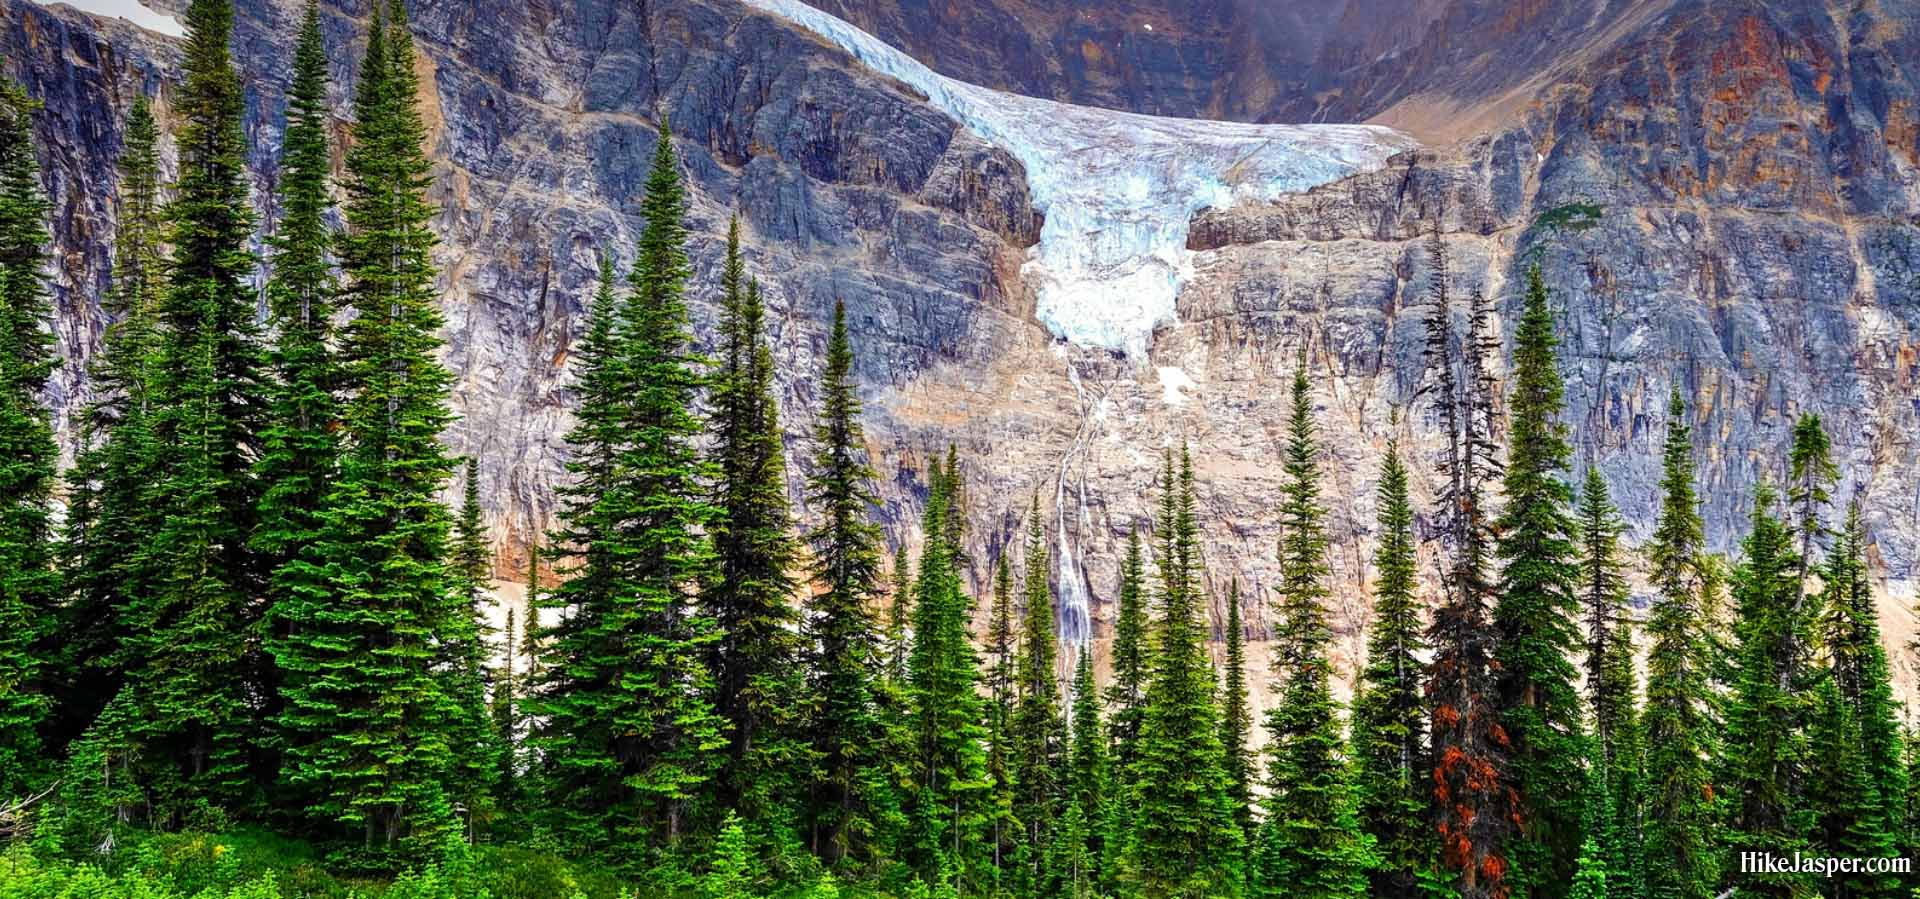 Hiking Jasper's Edith Cavell Meadows in 2019